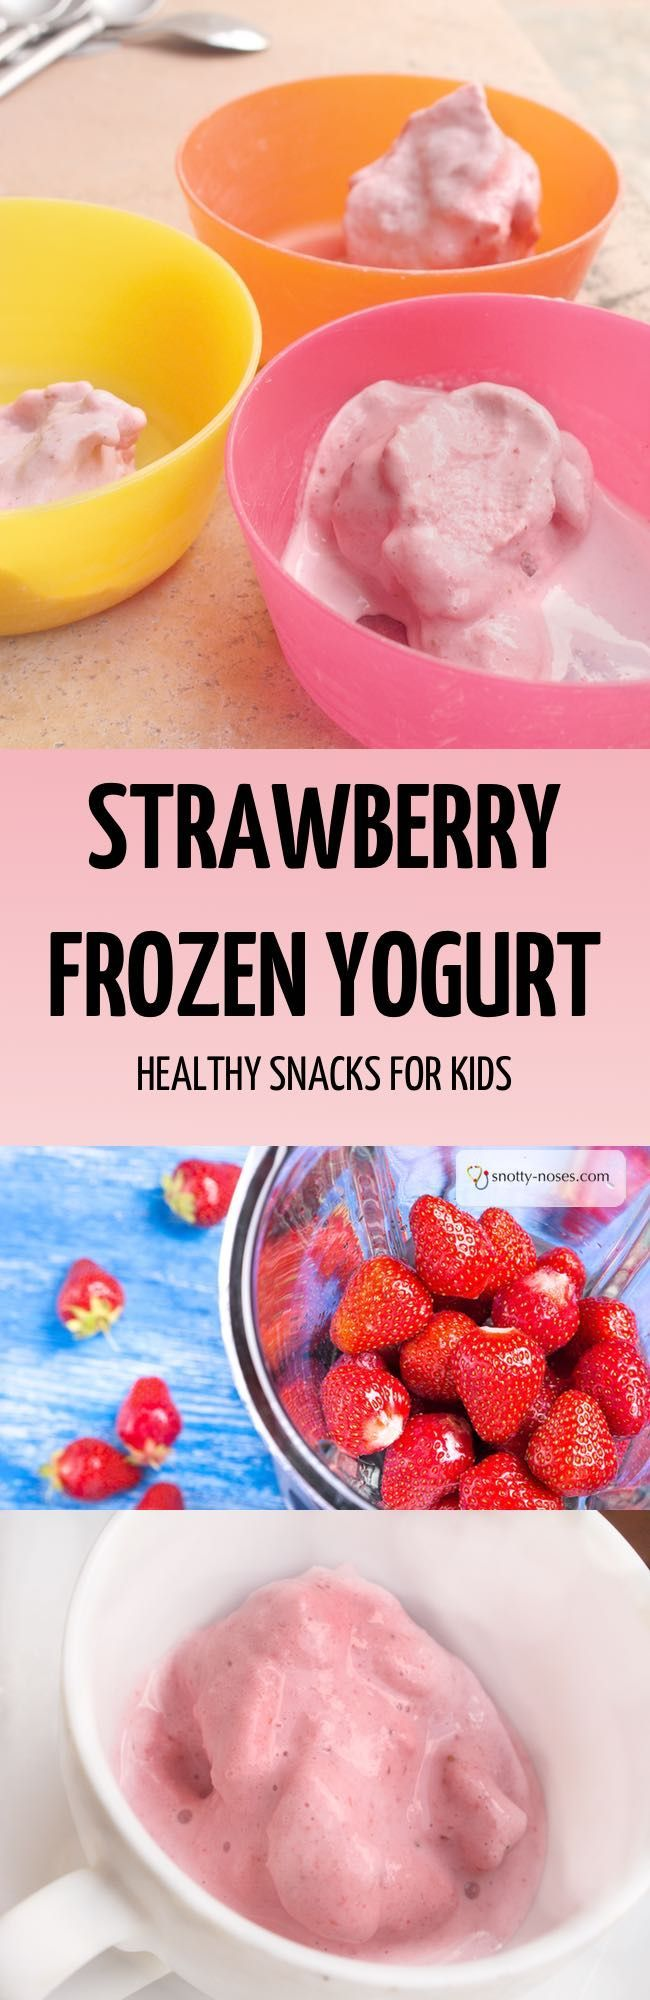 Who said that strawberry frozen yogurt was unhealthy? This is a really easy and really healthy recipe for frozen yogurt that your kids and friends will love. Just 2 ingredients, no added sugar and ready in minutes. I'm happy for my kids to eat this every